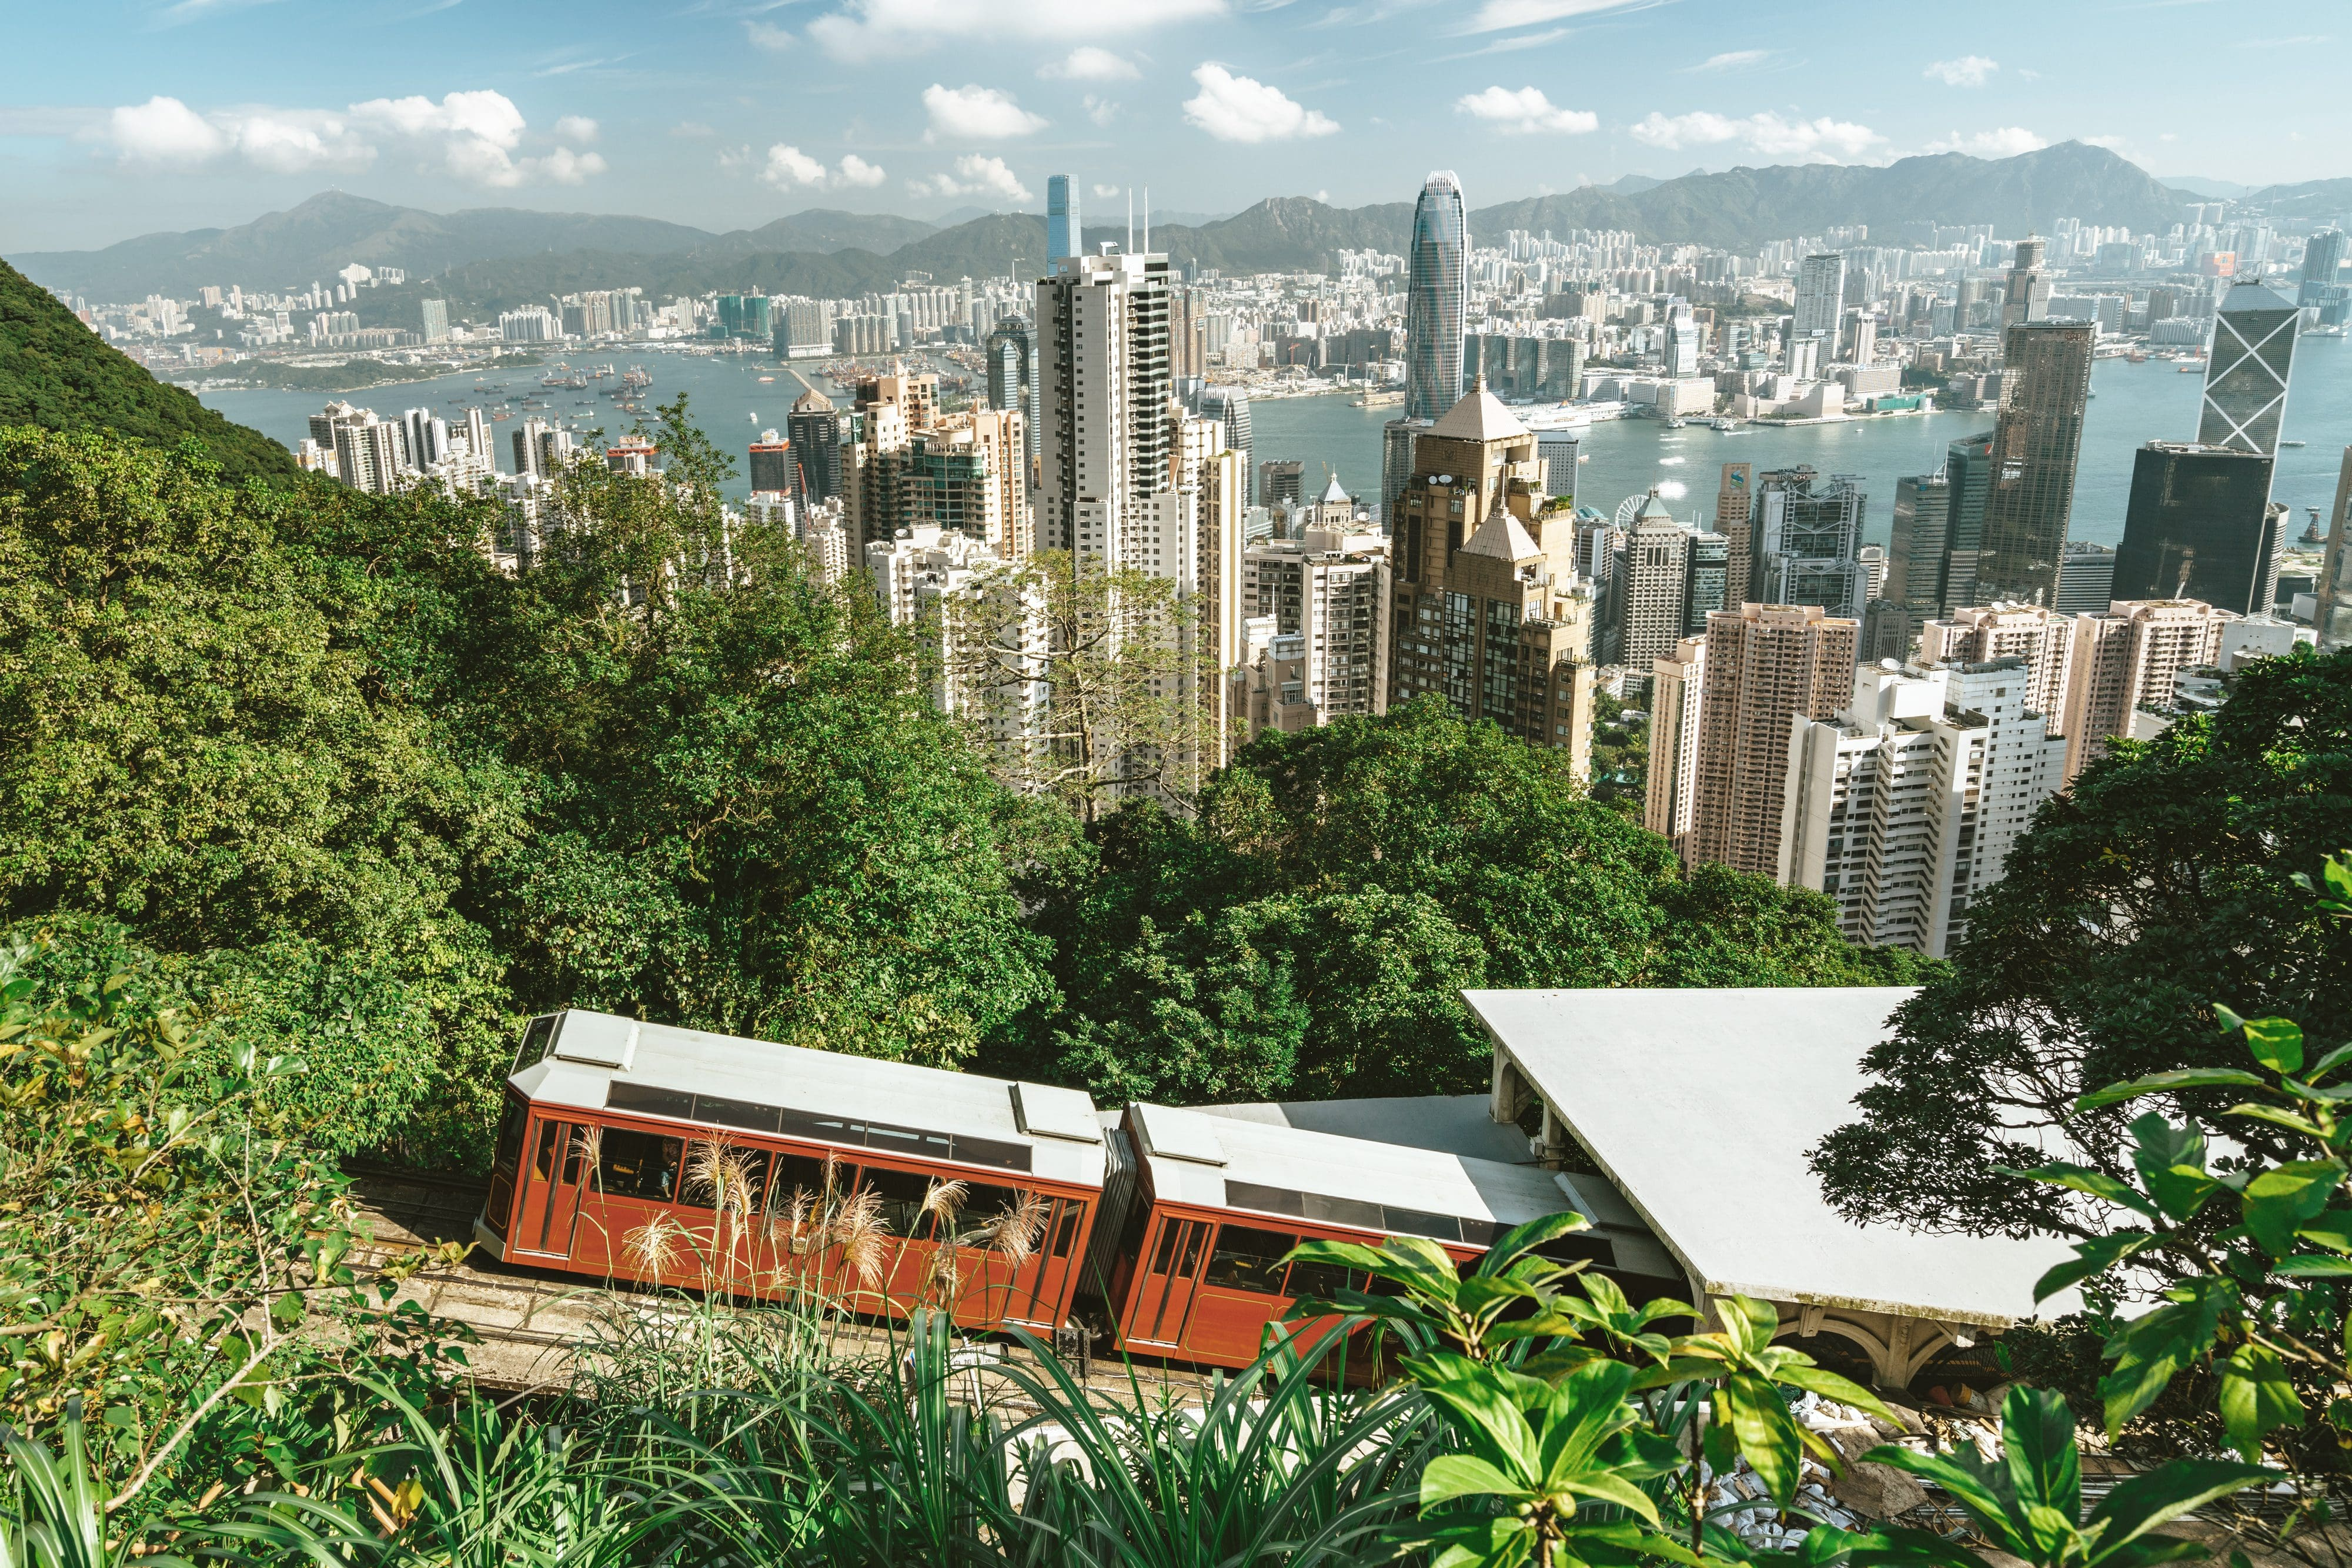 View from the top of Hong Kong's Victoria Peak overlooking the famous tram, the city skyline and Victoria Bay below